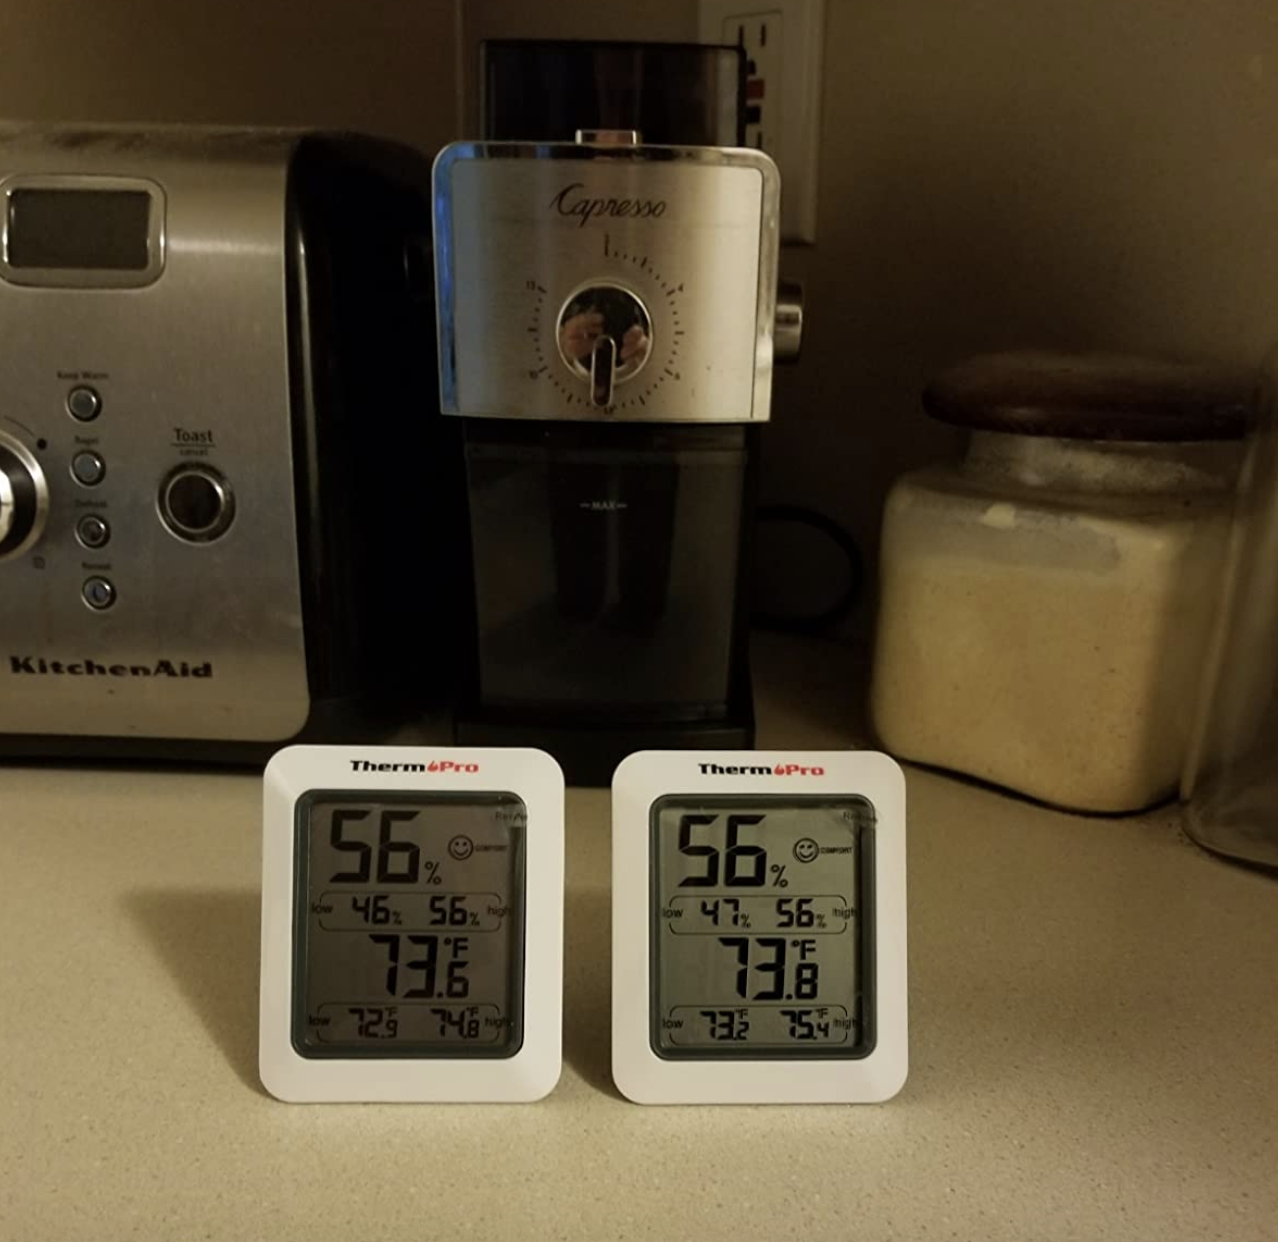 two of the thermometers next to each other on a kitchen counter